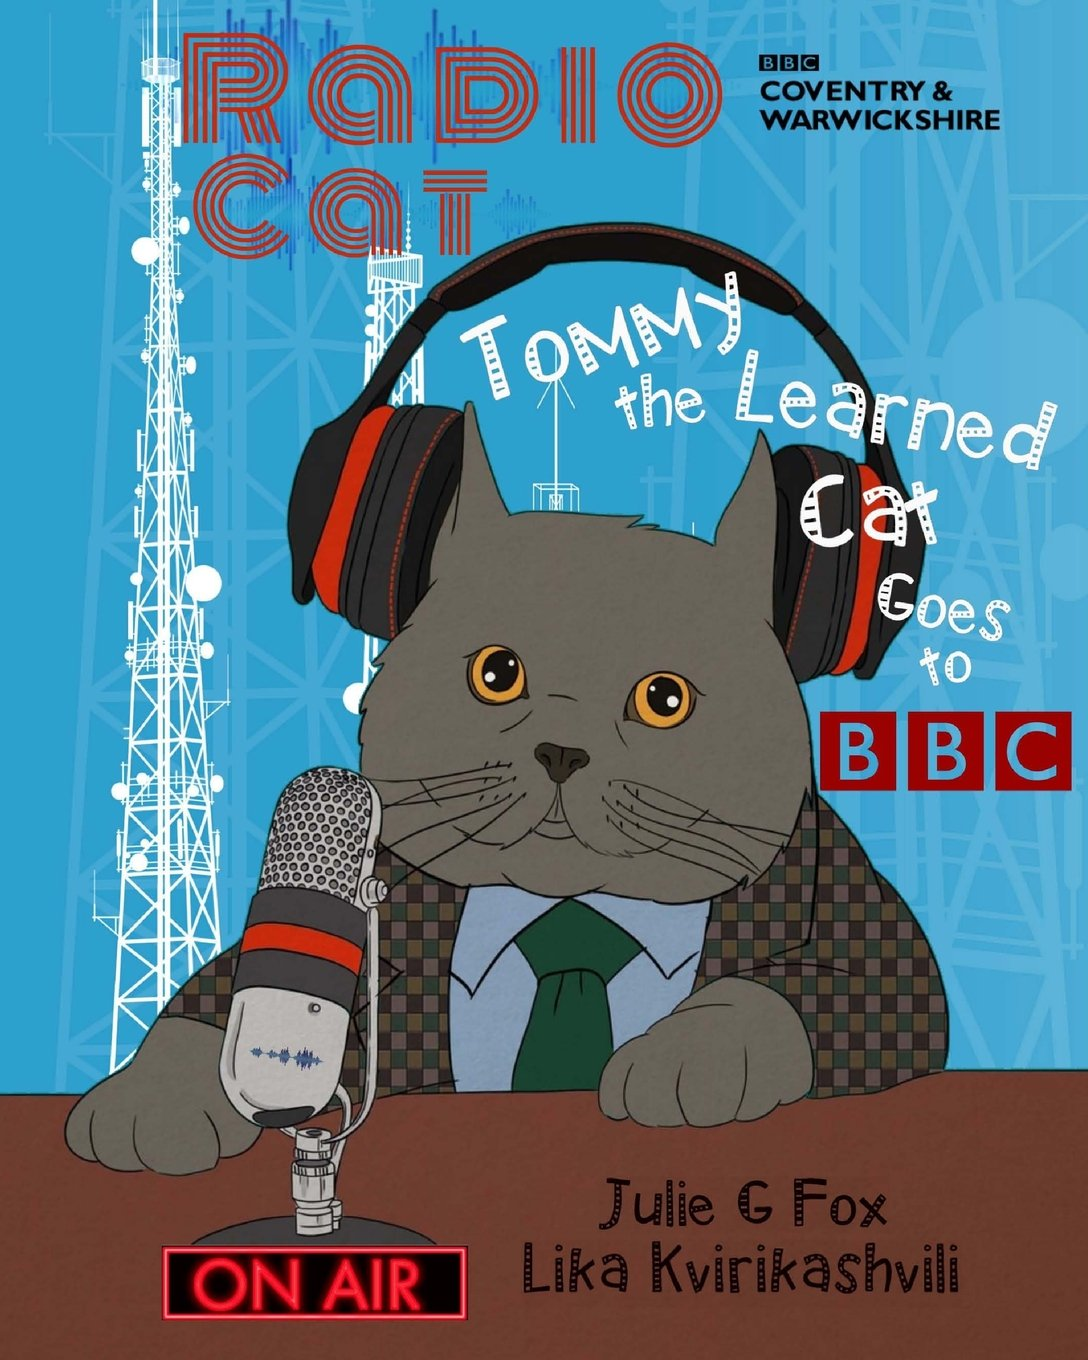 Read Online Radio Cat: Tommy the Learned Cat Goes to BBC: 95th Anniversary of BBC's 1st Radio Broadcast PDF